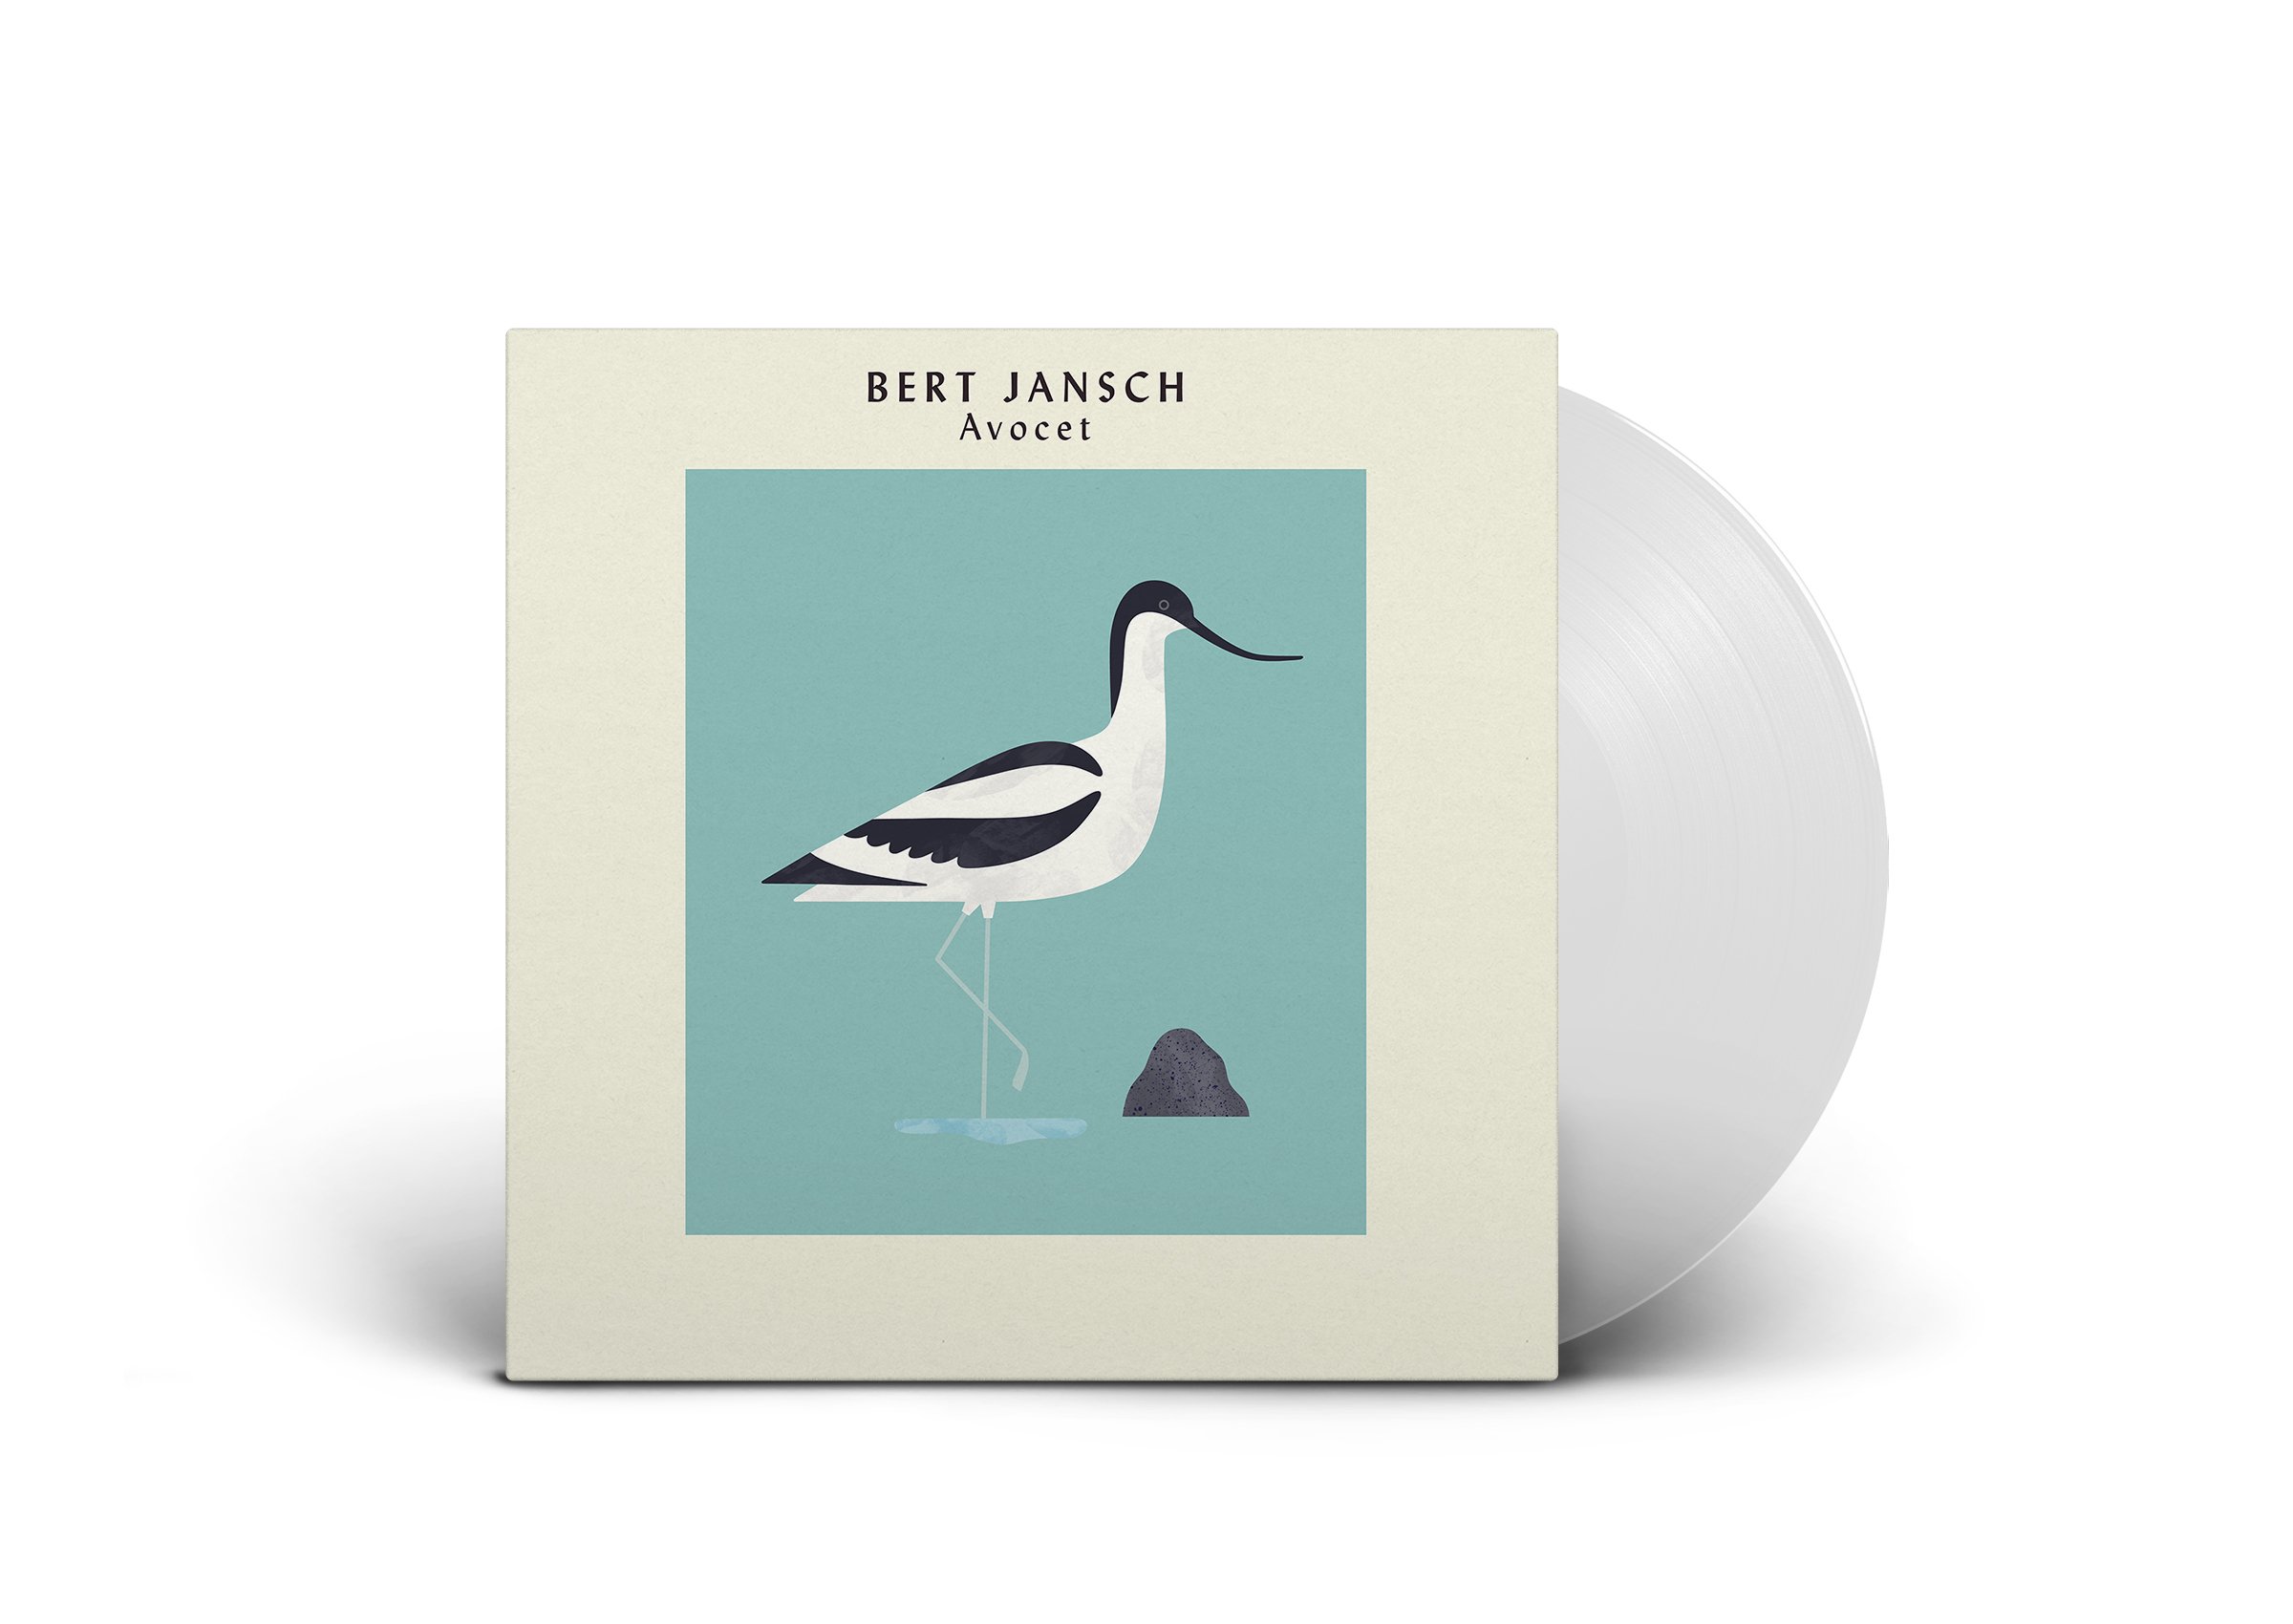 Avocet – Expanded Anniversary Edition